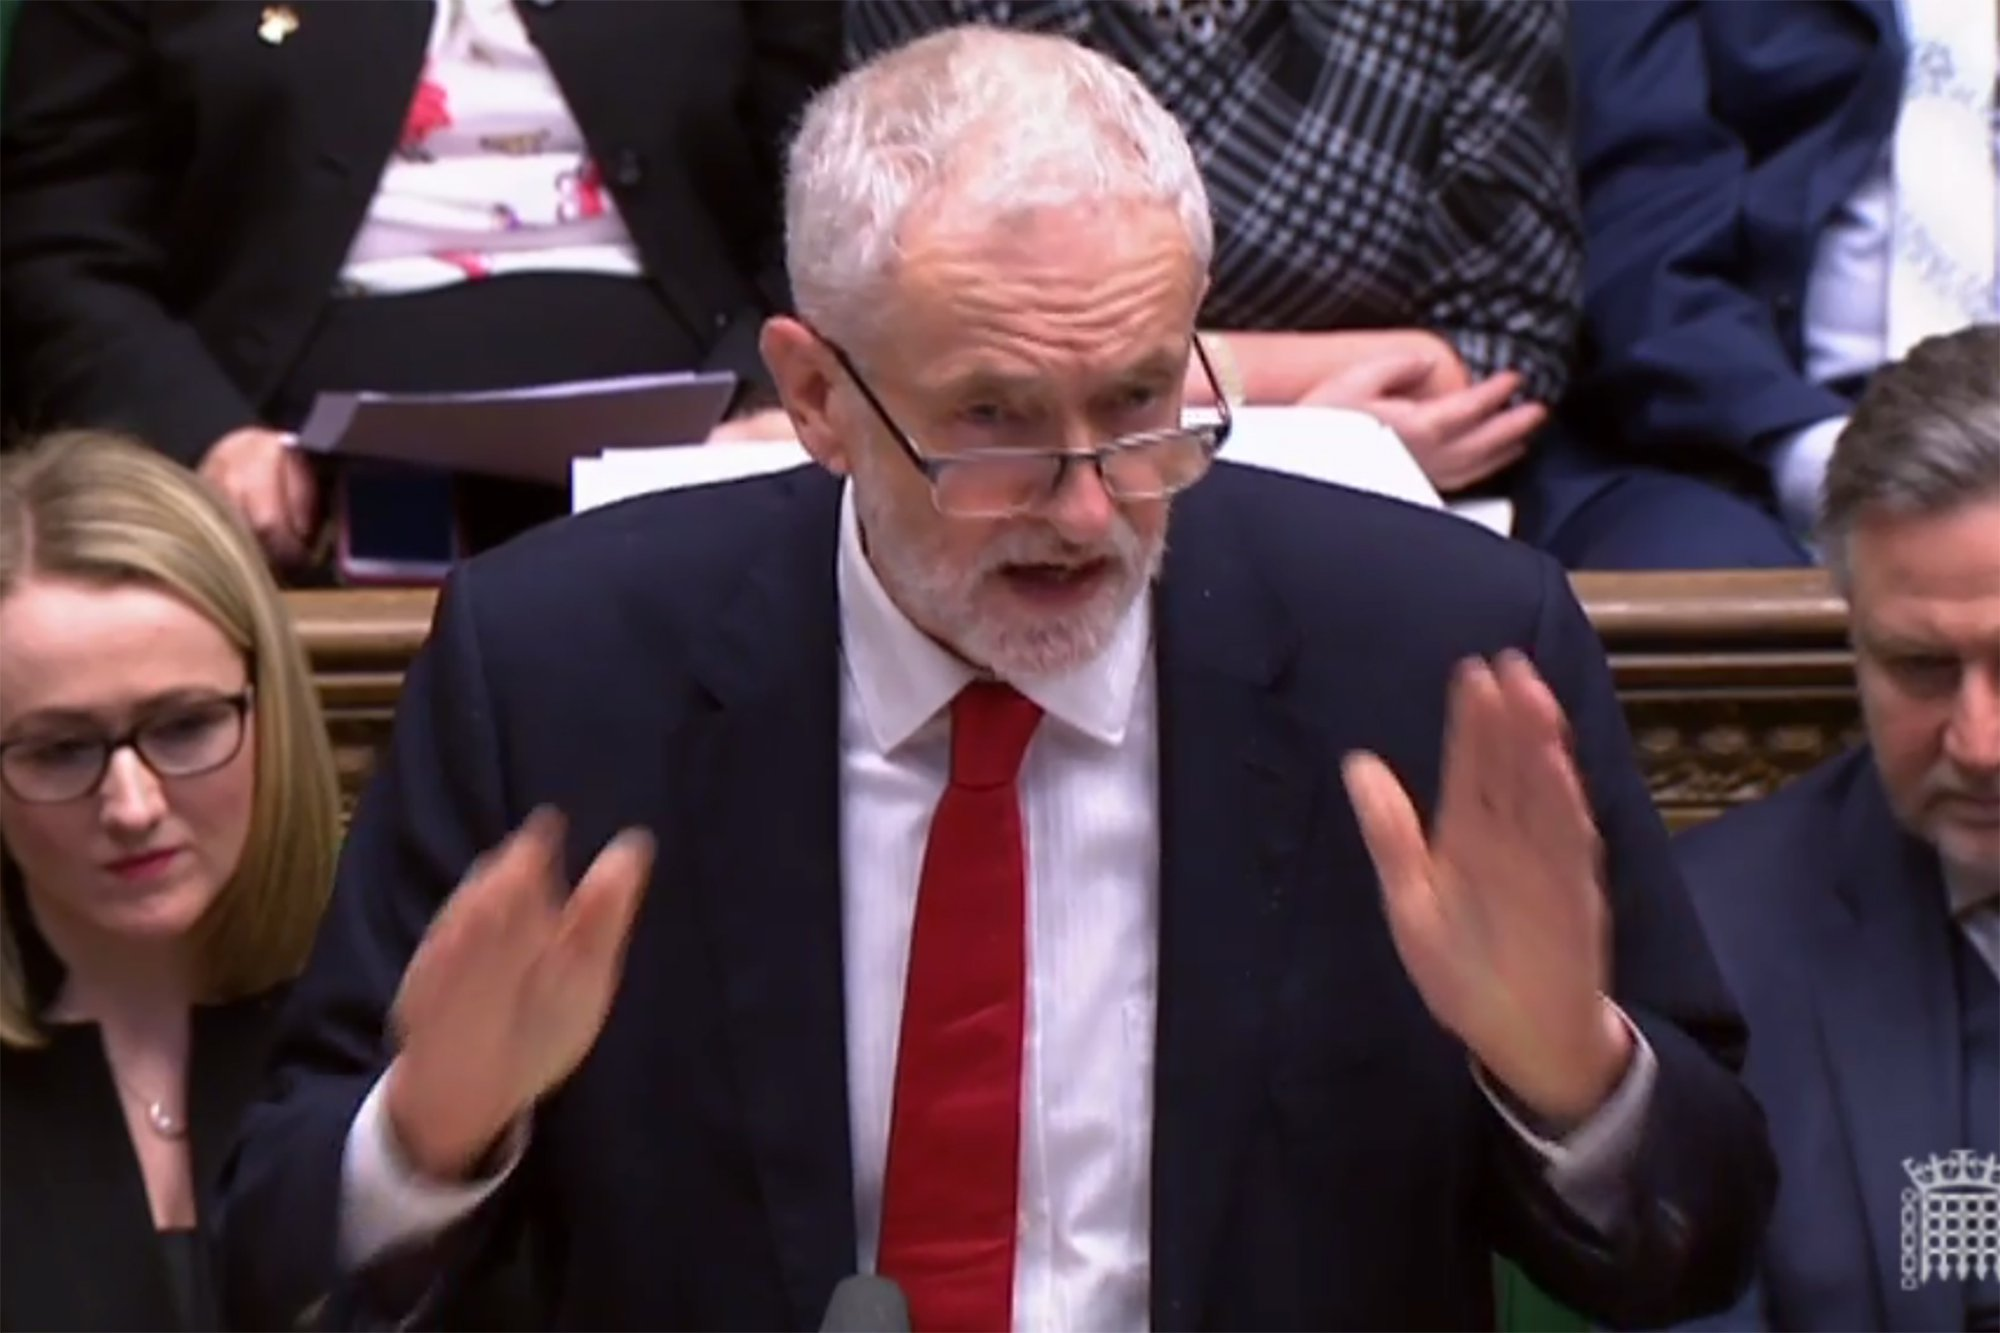 "A video grab from footage broadcast by the UK Parliament's Parliamentary Recording Unit (PRU) shows opposition leader Jeremy Corbyn replying to a statement given by Britain's Prime Minister Theresa May on Brexit in the House of Commons in London on February 12, 2019. - May updated parliament on her latest meetings in Brussels and Dublin aimed at securing a divorce agreement with the EU, with Britain due to leave the bloc on March 29. (Photo by HO / PRU / AFP) / RESTRICTED TO EDITORIAL USE - MANDATORY CREDIT "" AFP PHOTO / PRU "" - NO USE FOR ENTERTAINMENT, SATIRICAL, MARKETING OR ADVERTISING CAMPAIGNSHO/AFP/Getty Images"